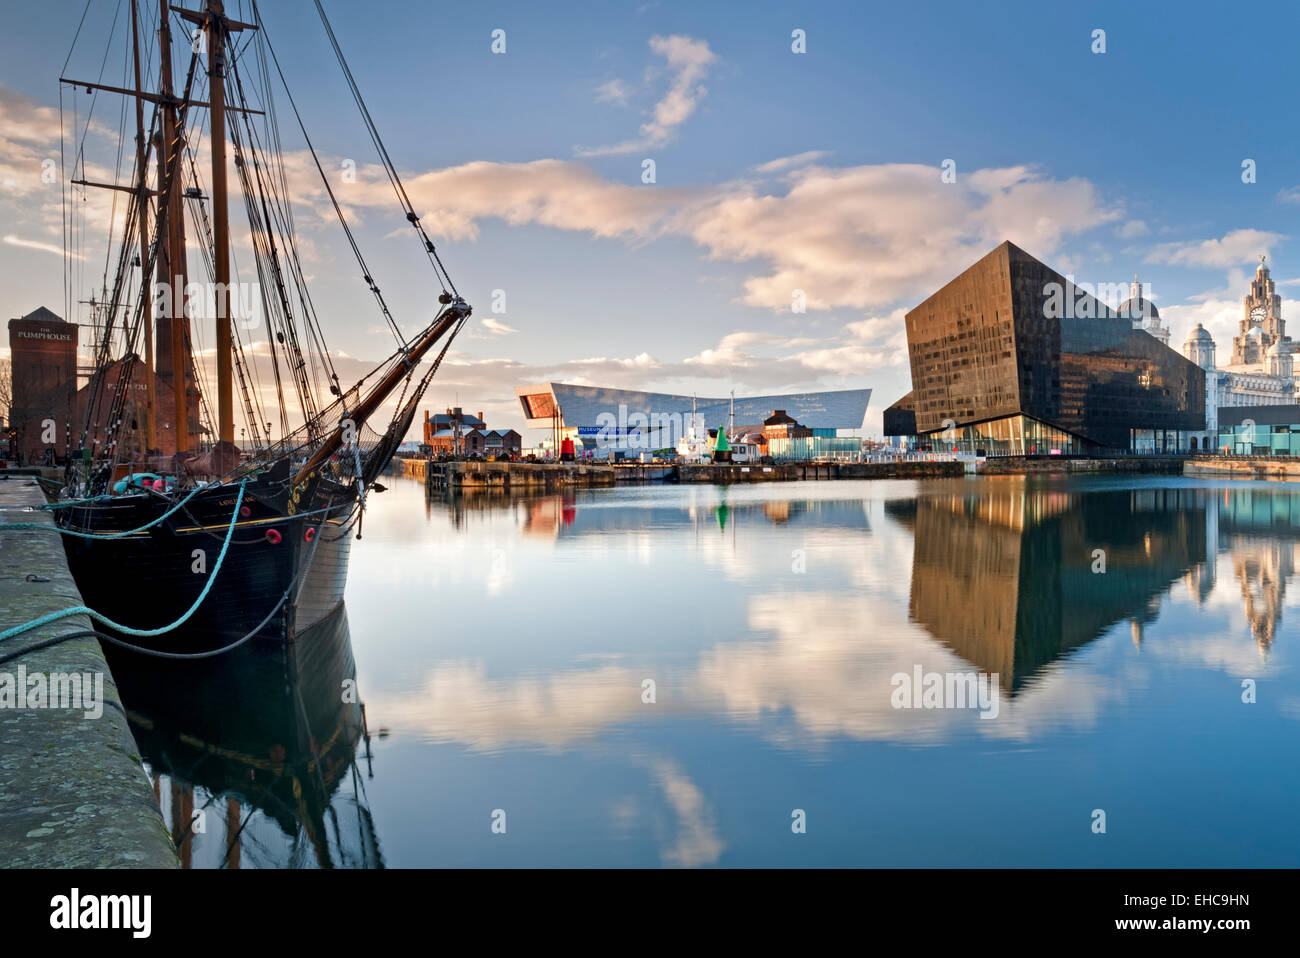 Tall Ship, Mann Island Apartments and Liverpool Museum, across Canning Dock, Liverpool, Merseyside, England, UK - Stock Image